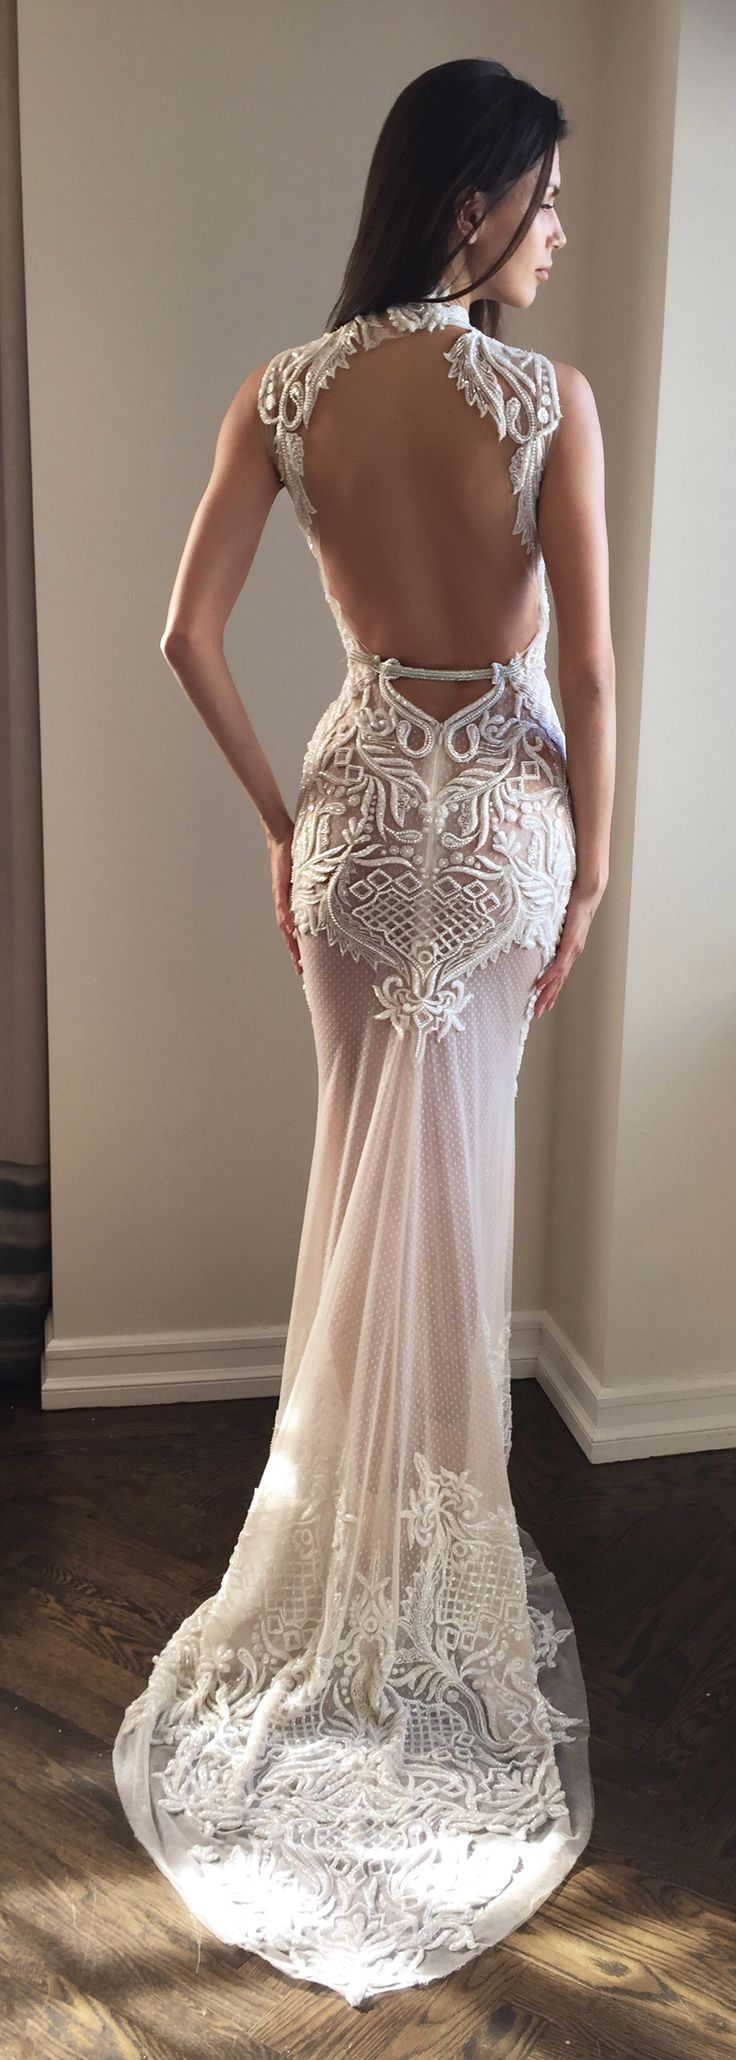 How intricate is the lacework on this wedding dress by @bertabridal - obsessed is not the word!